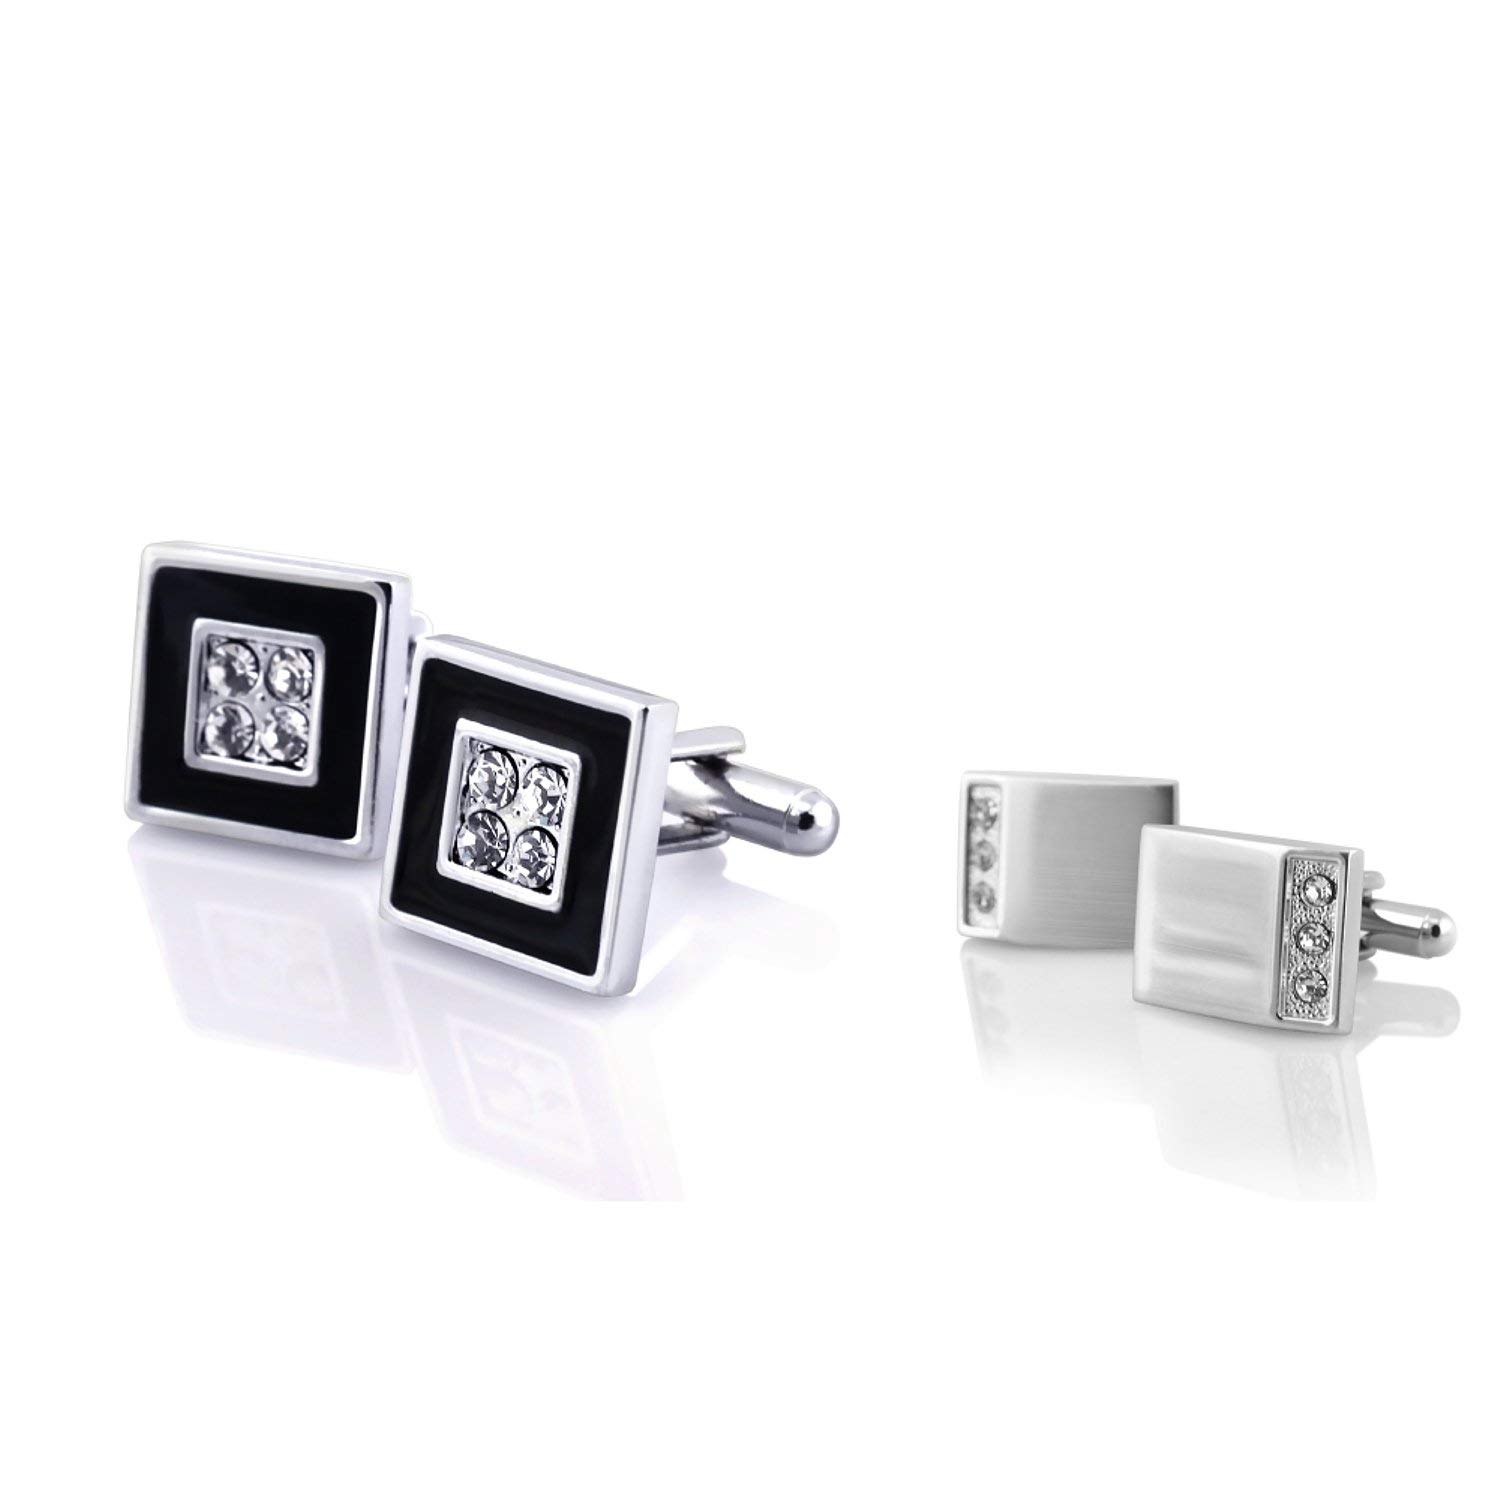 INSTEN 2 Packs of Cufflinks - Silver Rectangle with 3 Rhinestones, Black/Silver Square with 4 Jewels